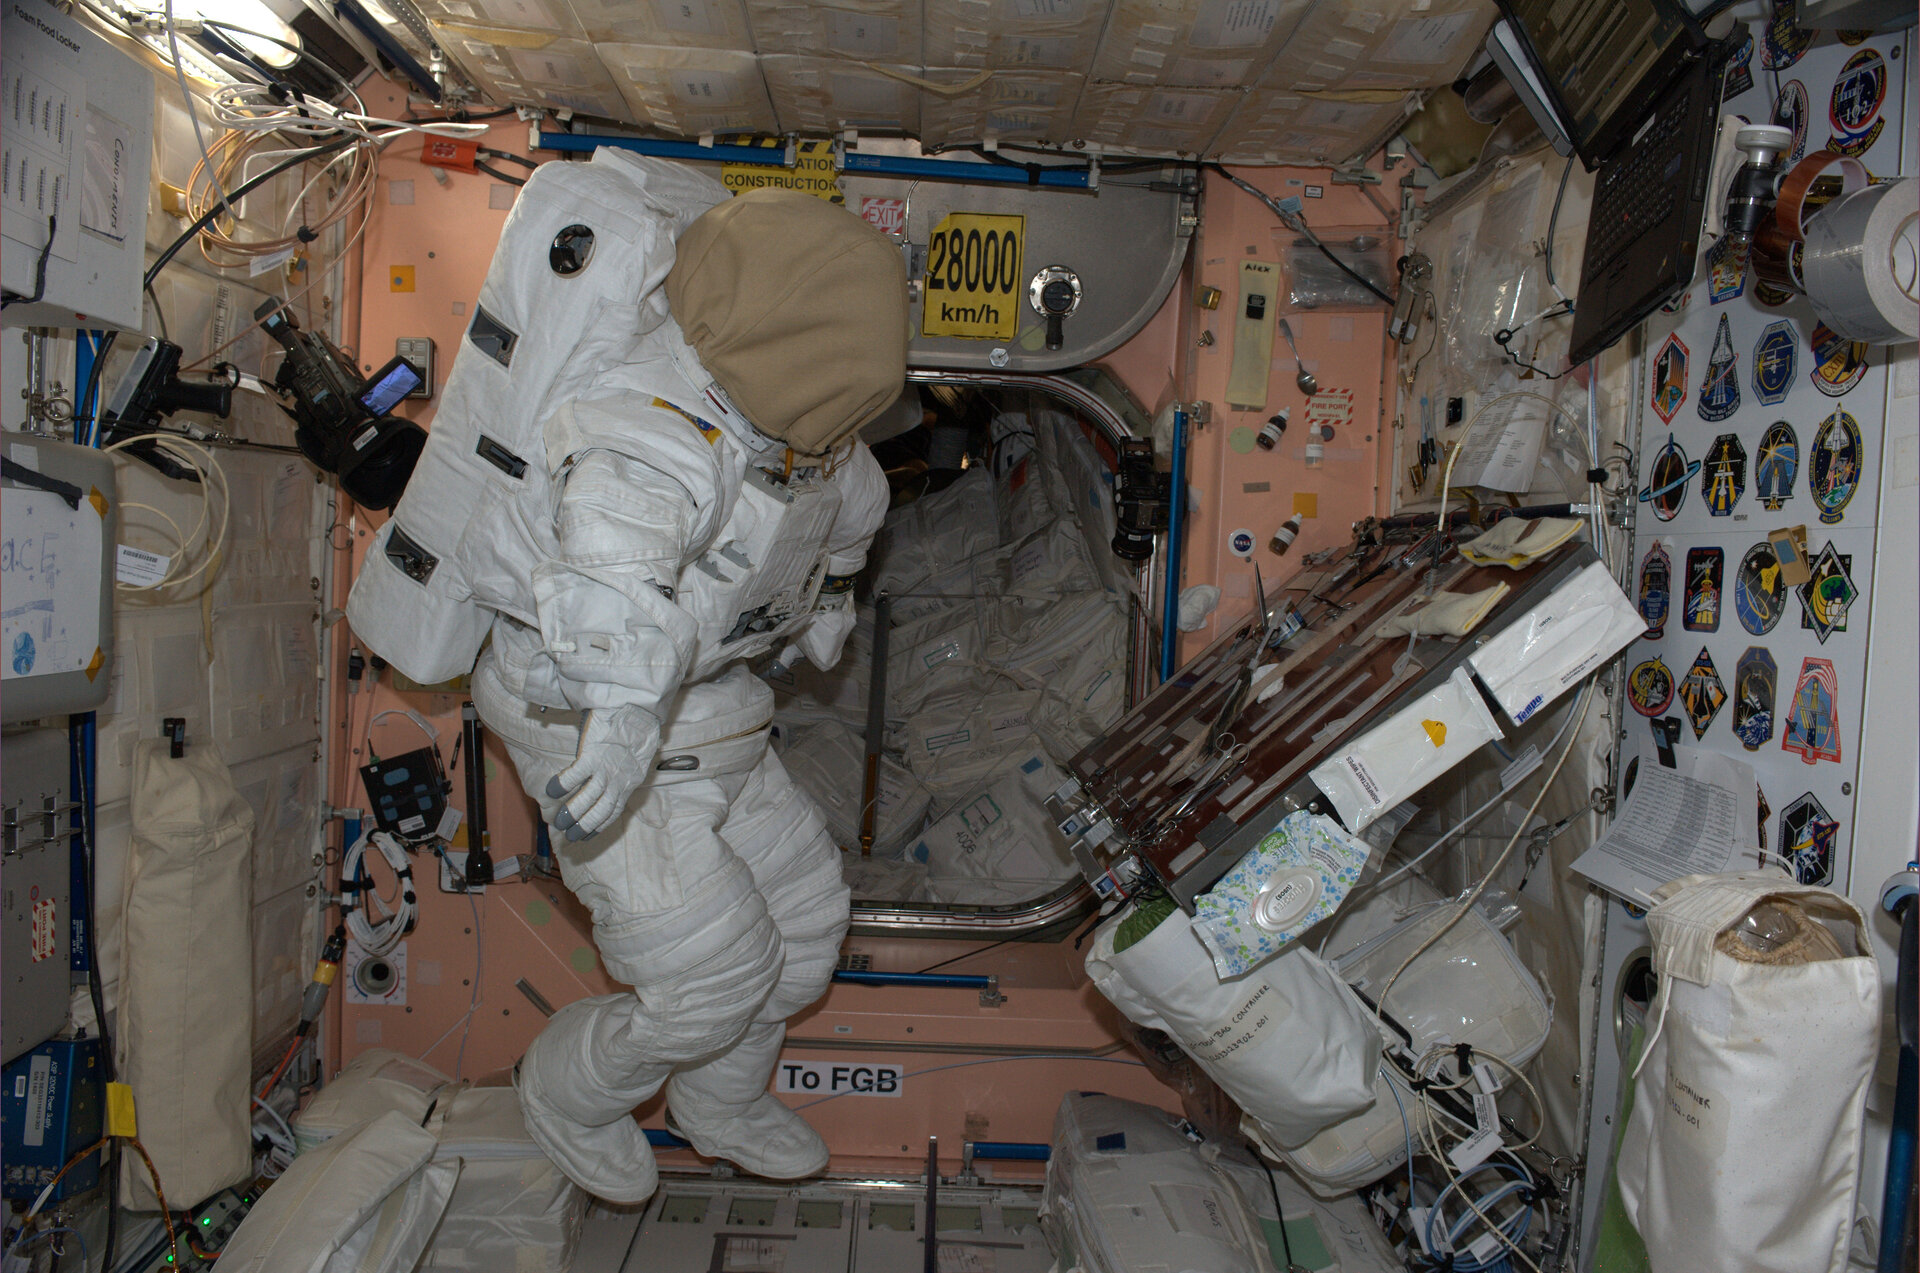 Space Station spacesuit